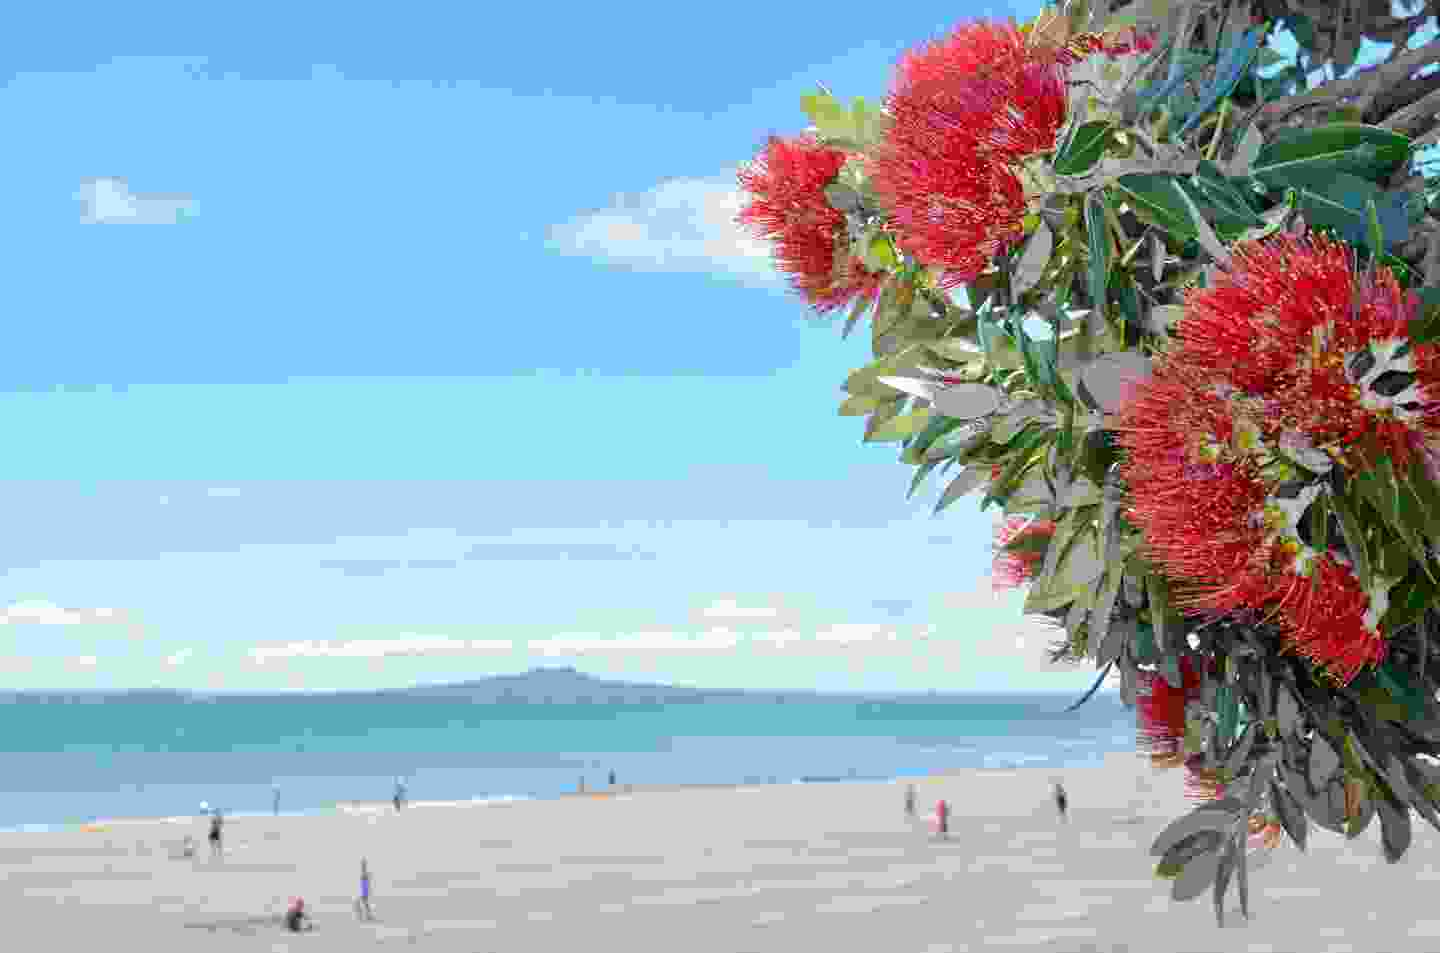 Pohutukawa blossoms on the north shore of New Zealand (Shutterstock)